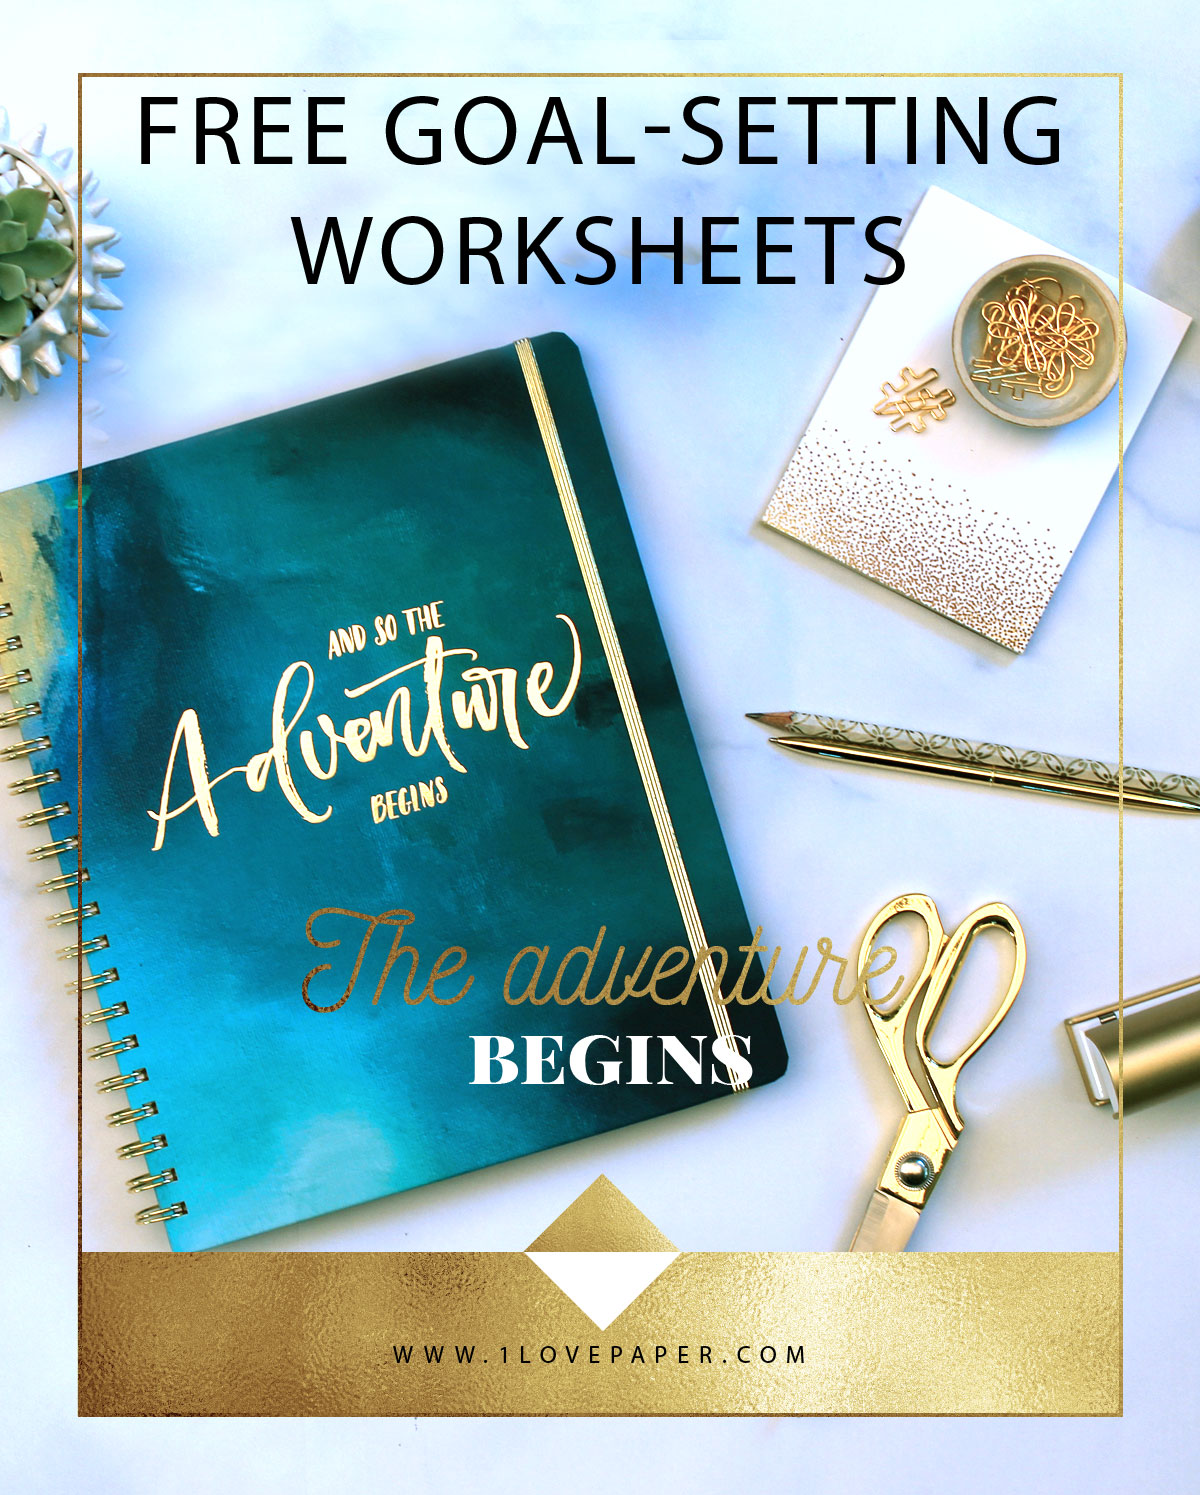 A Goal Without A Plan Is Just A Wish Free Goal Setting Worksheets